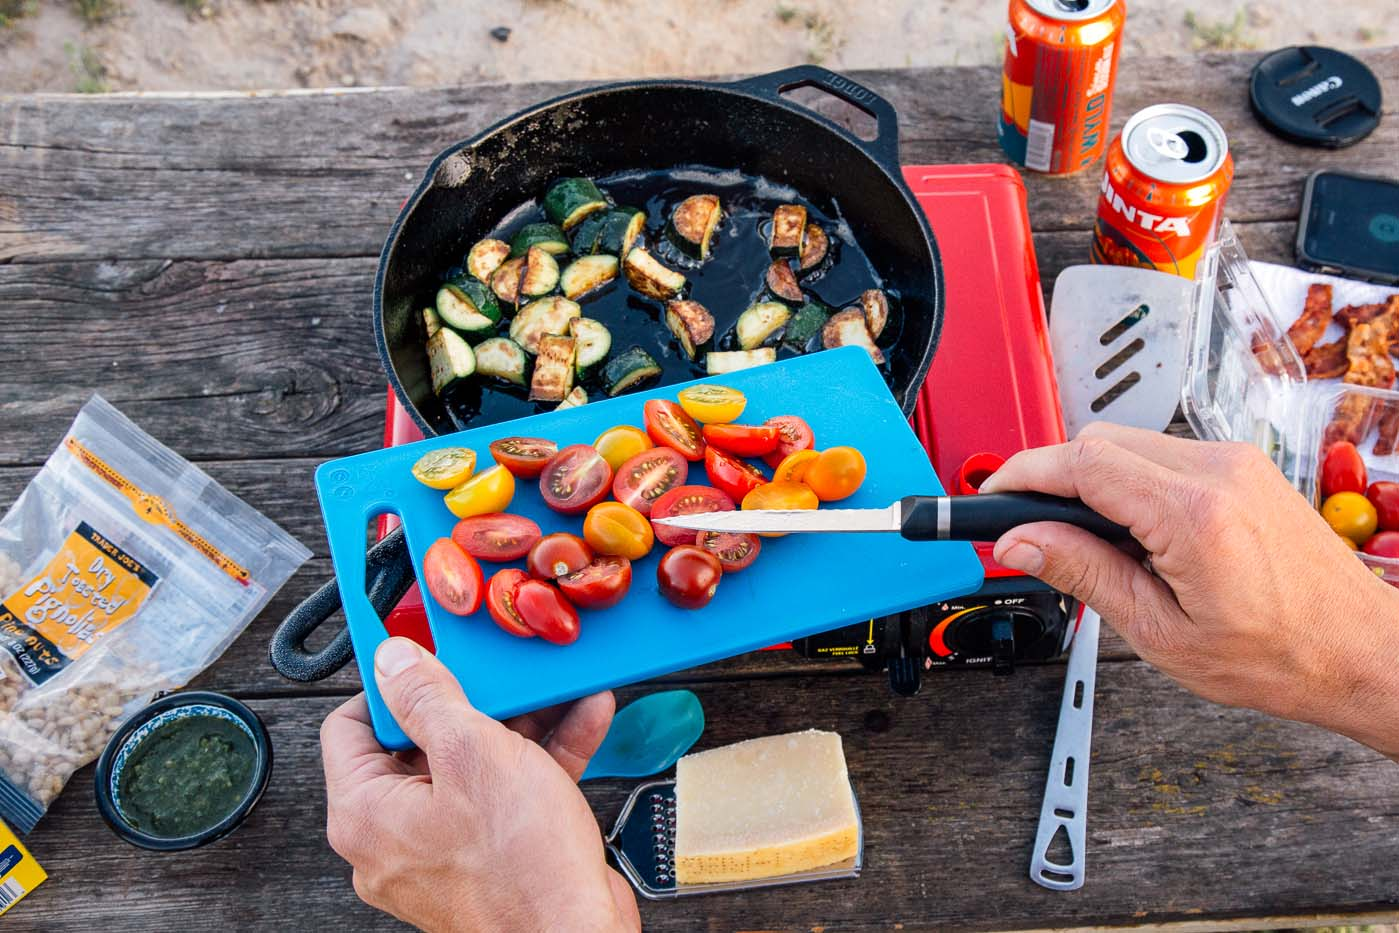 Man moving cut tomatoes from a cutting board into a cast iron skillet on a camping stove.